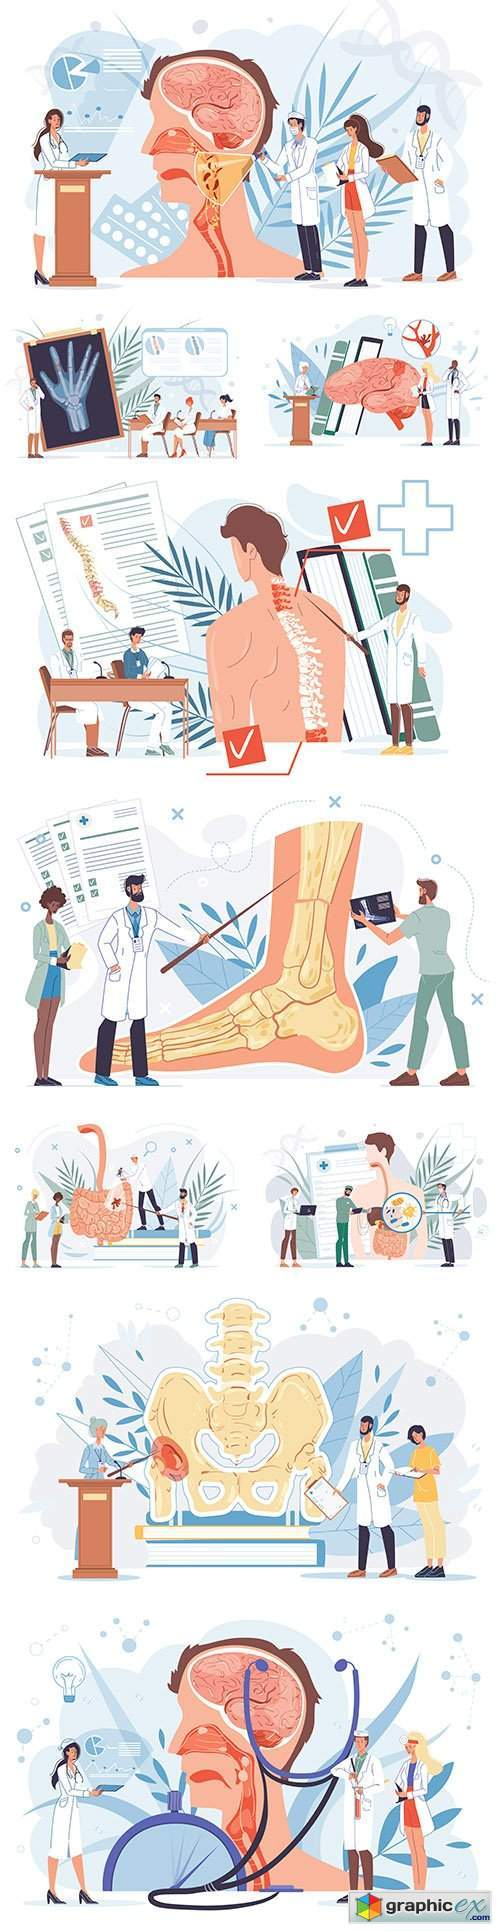 Cartoon heroes flat doctor at work and therapy concepts